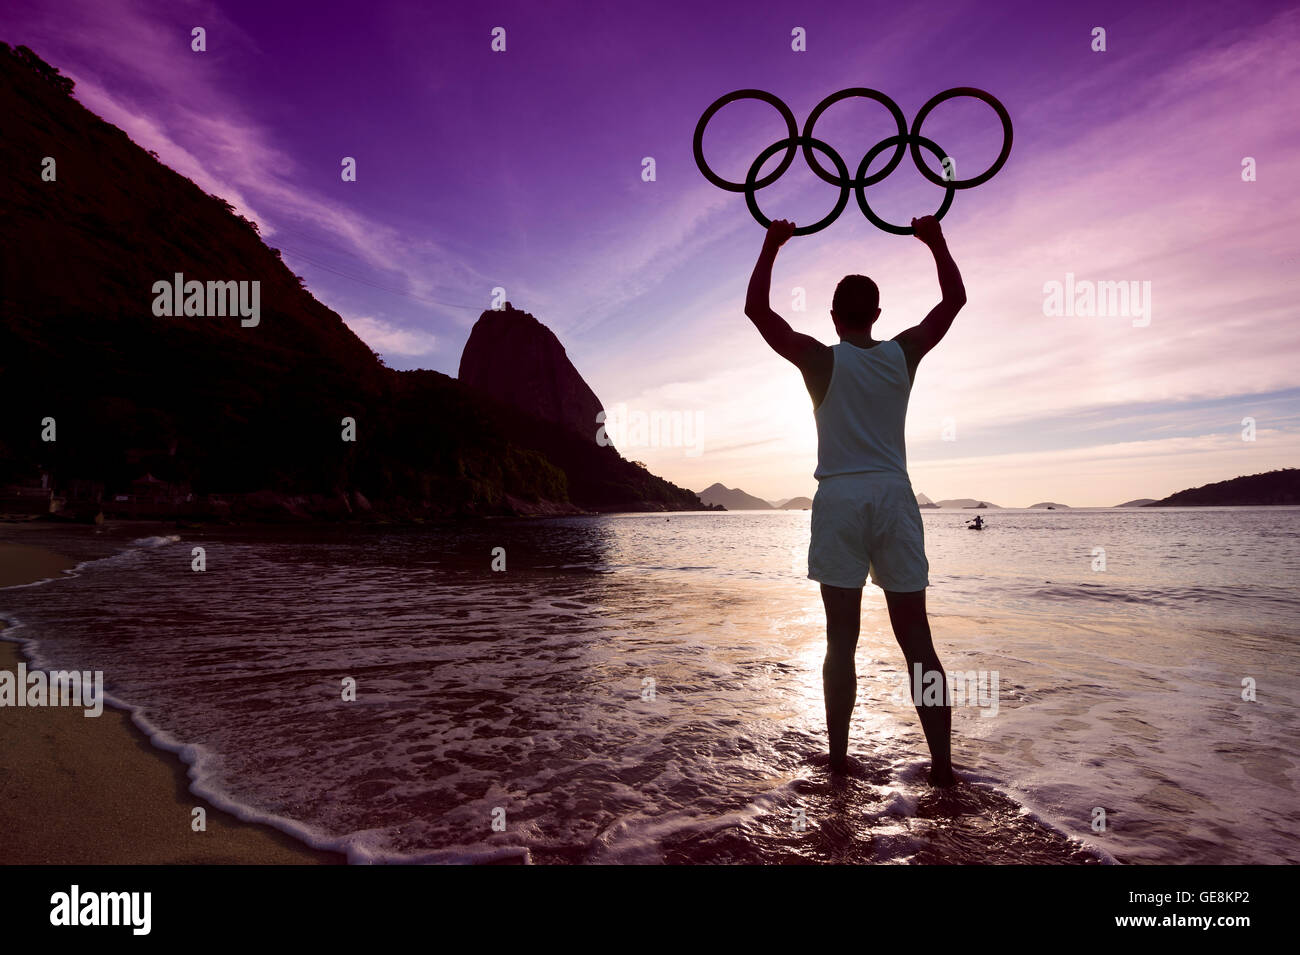 RIO DE JANEIRO - APRIL 2, 2016: Silhouette of an athlete holds Olympic rings at a colorful sunrise at Sugarloaf - Stock Image